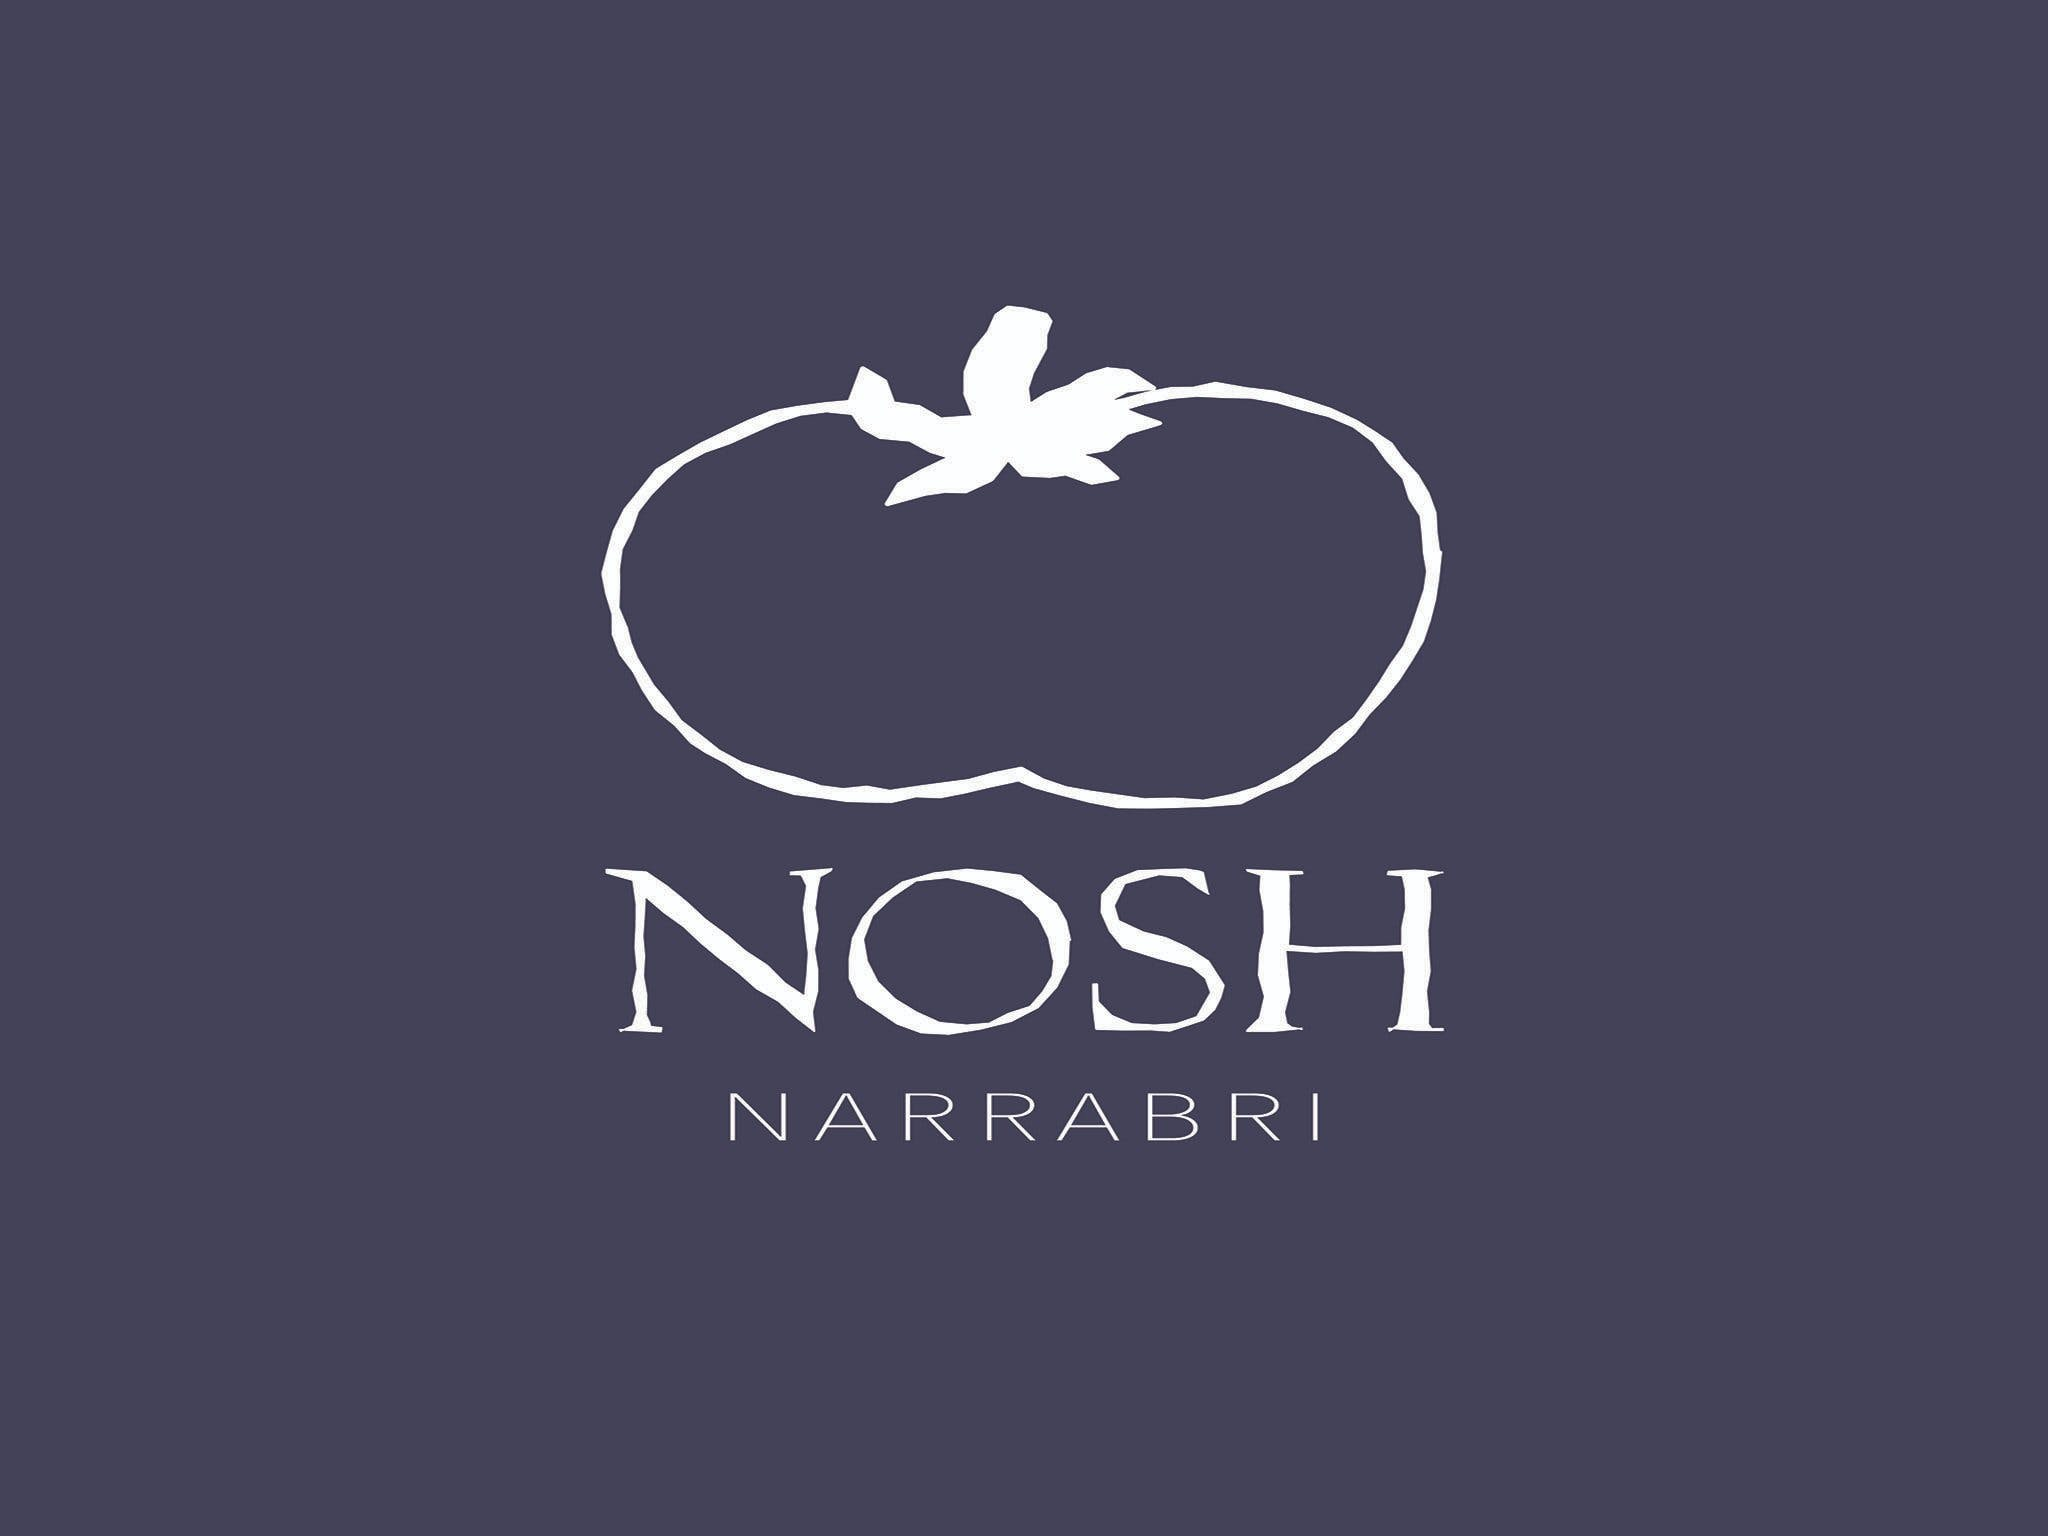 Nosh Narrabri - Stayed